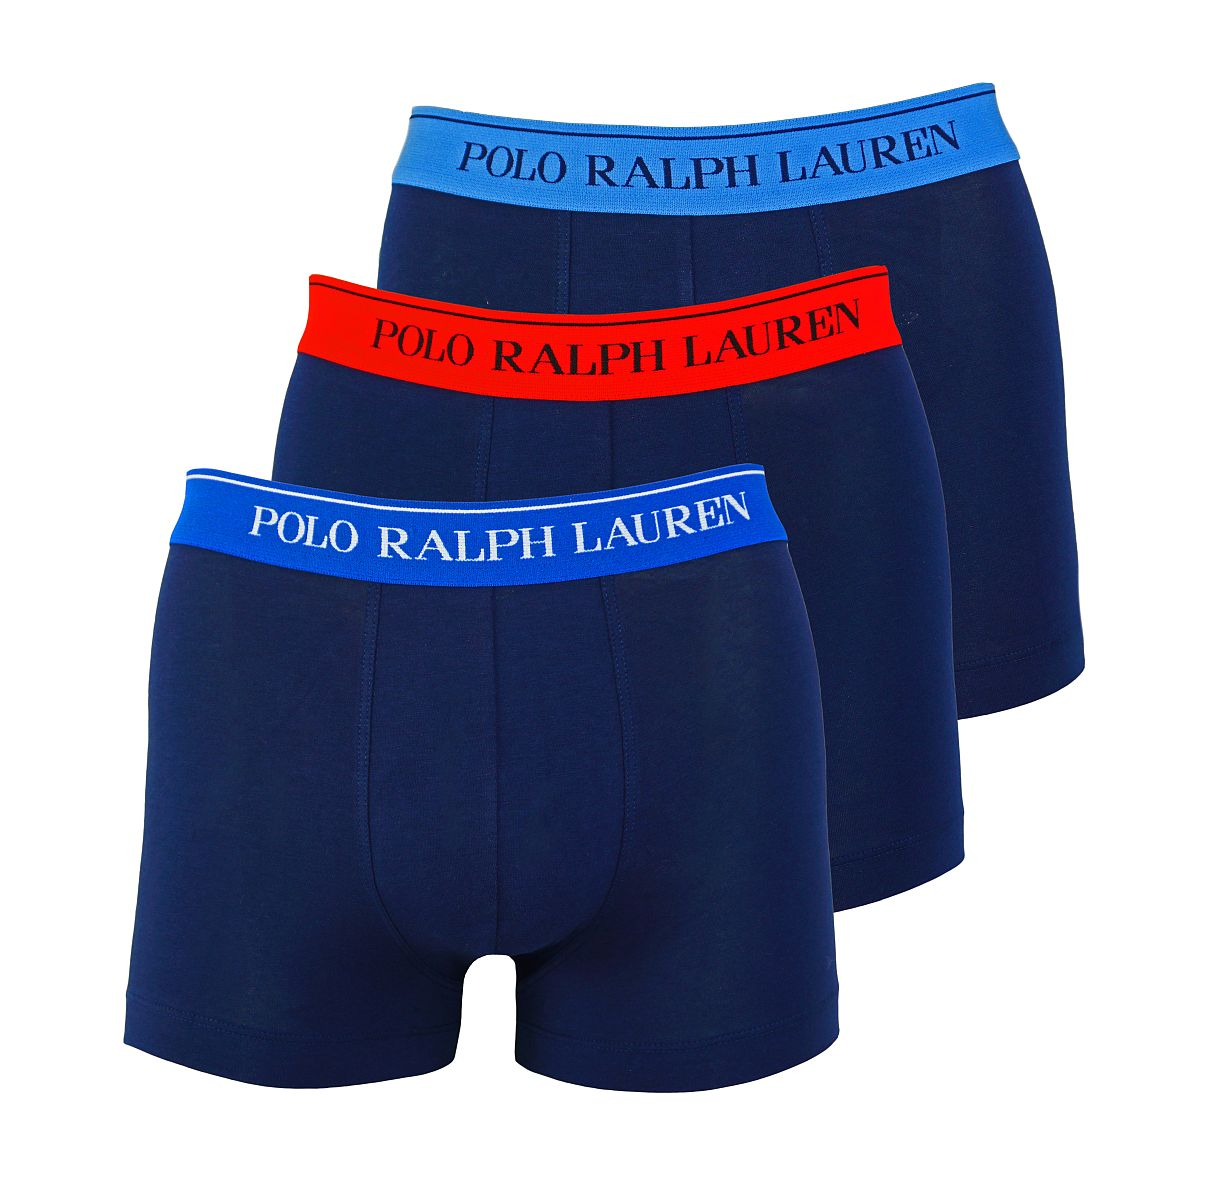 Ralph Lauren 3er Pack Trunks Shorts Spring1UDW NVY/SAPP/ NVY/BLU/ NVY/RED W18-US1